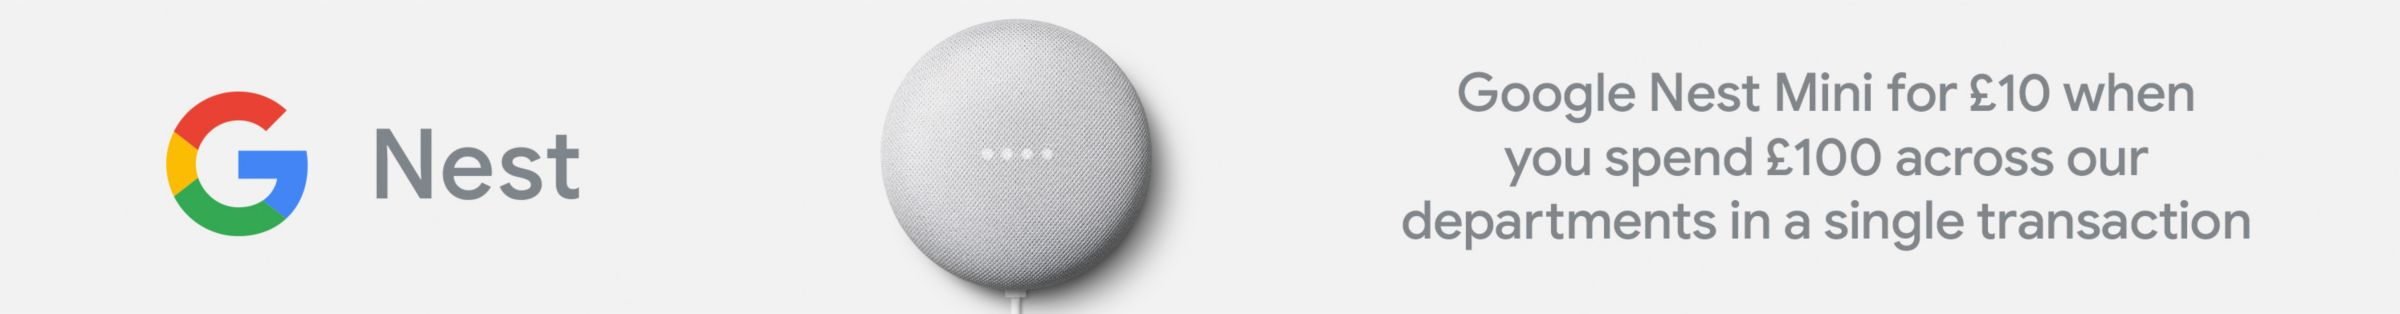 Google Nest Mini for £10 when you spend £100 across our departments in a single transaction